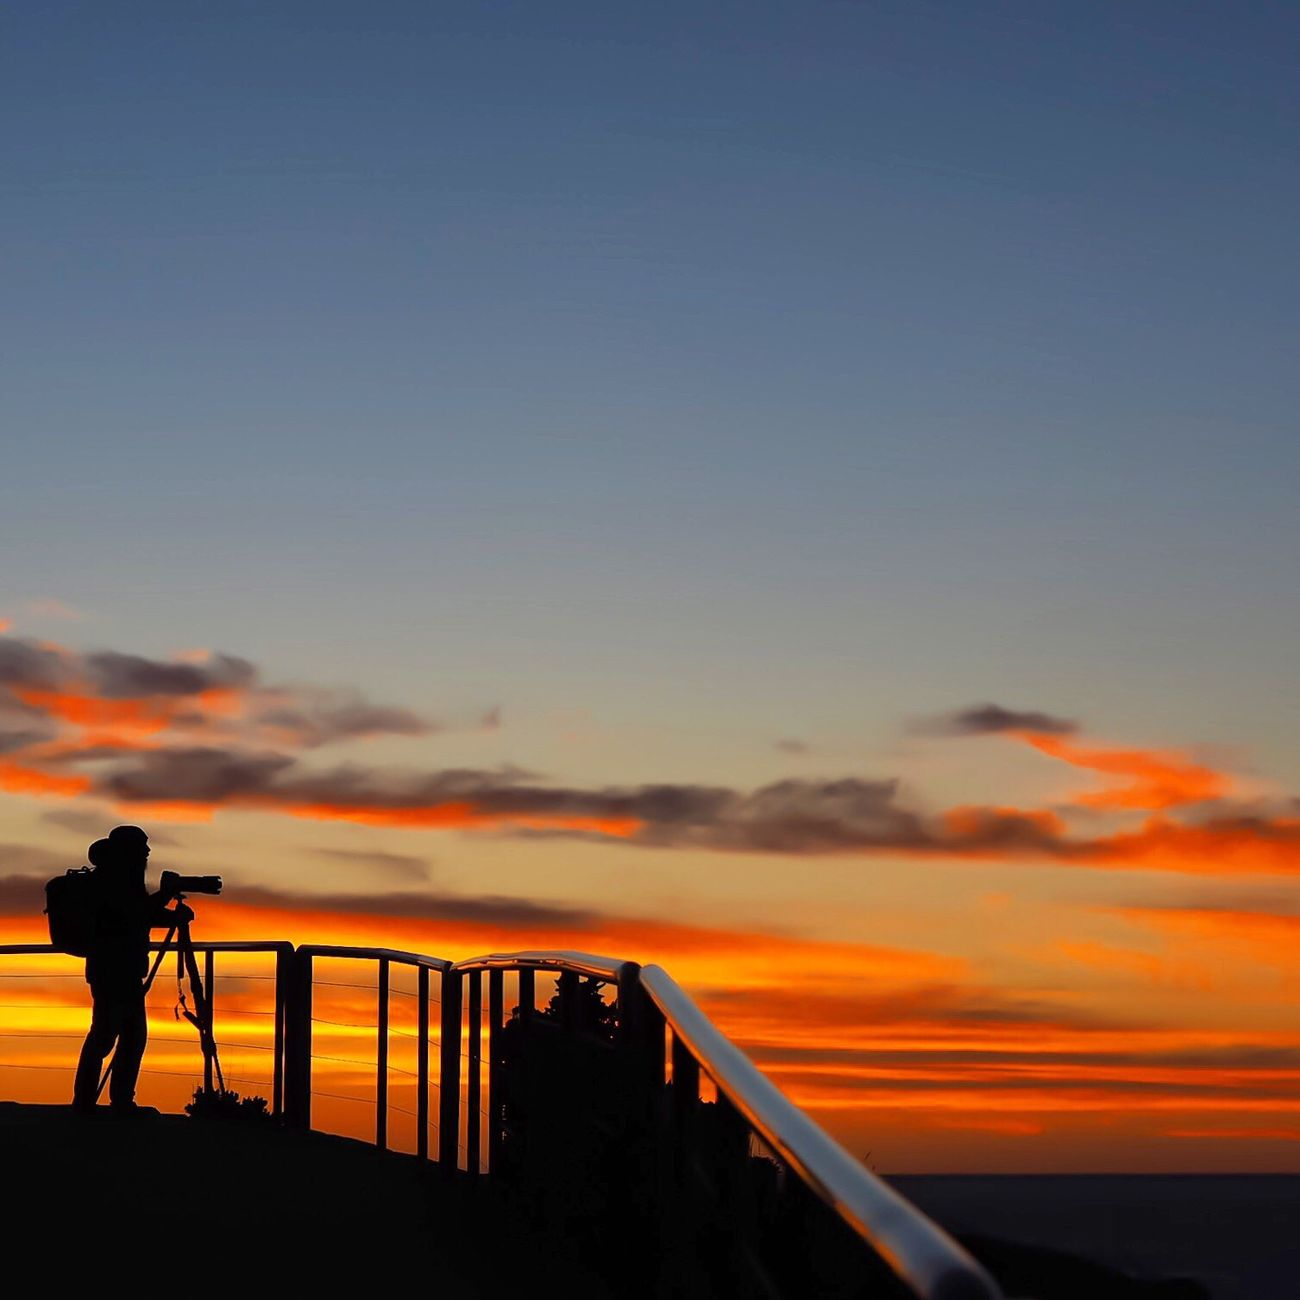 Sunrise up... Sydney Australia Sunrise_sunsets_aroundworld Newtalent Telling Stories Differently Thecolourofthesun Silhouette Photographer In The Shot People And Places